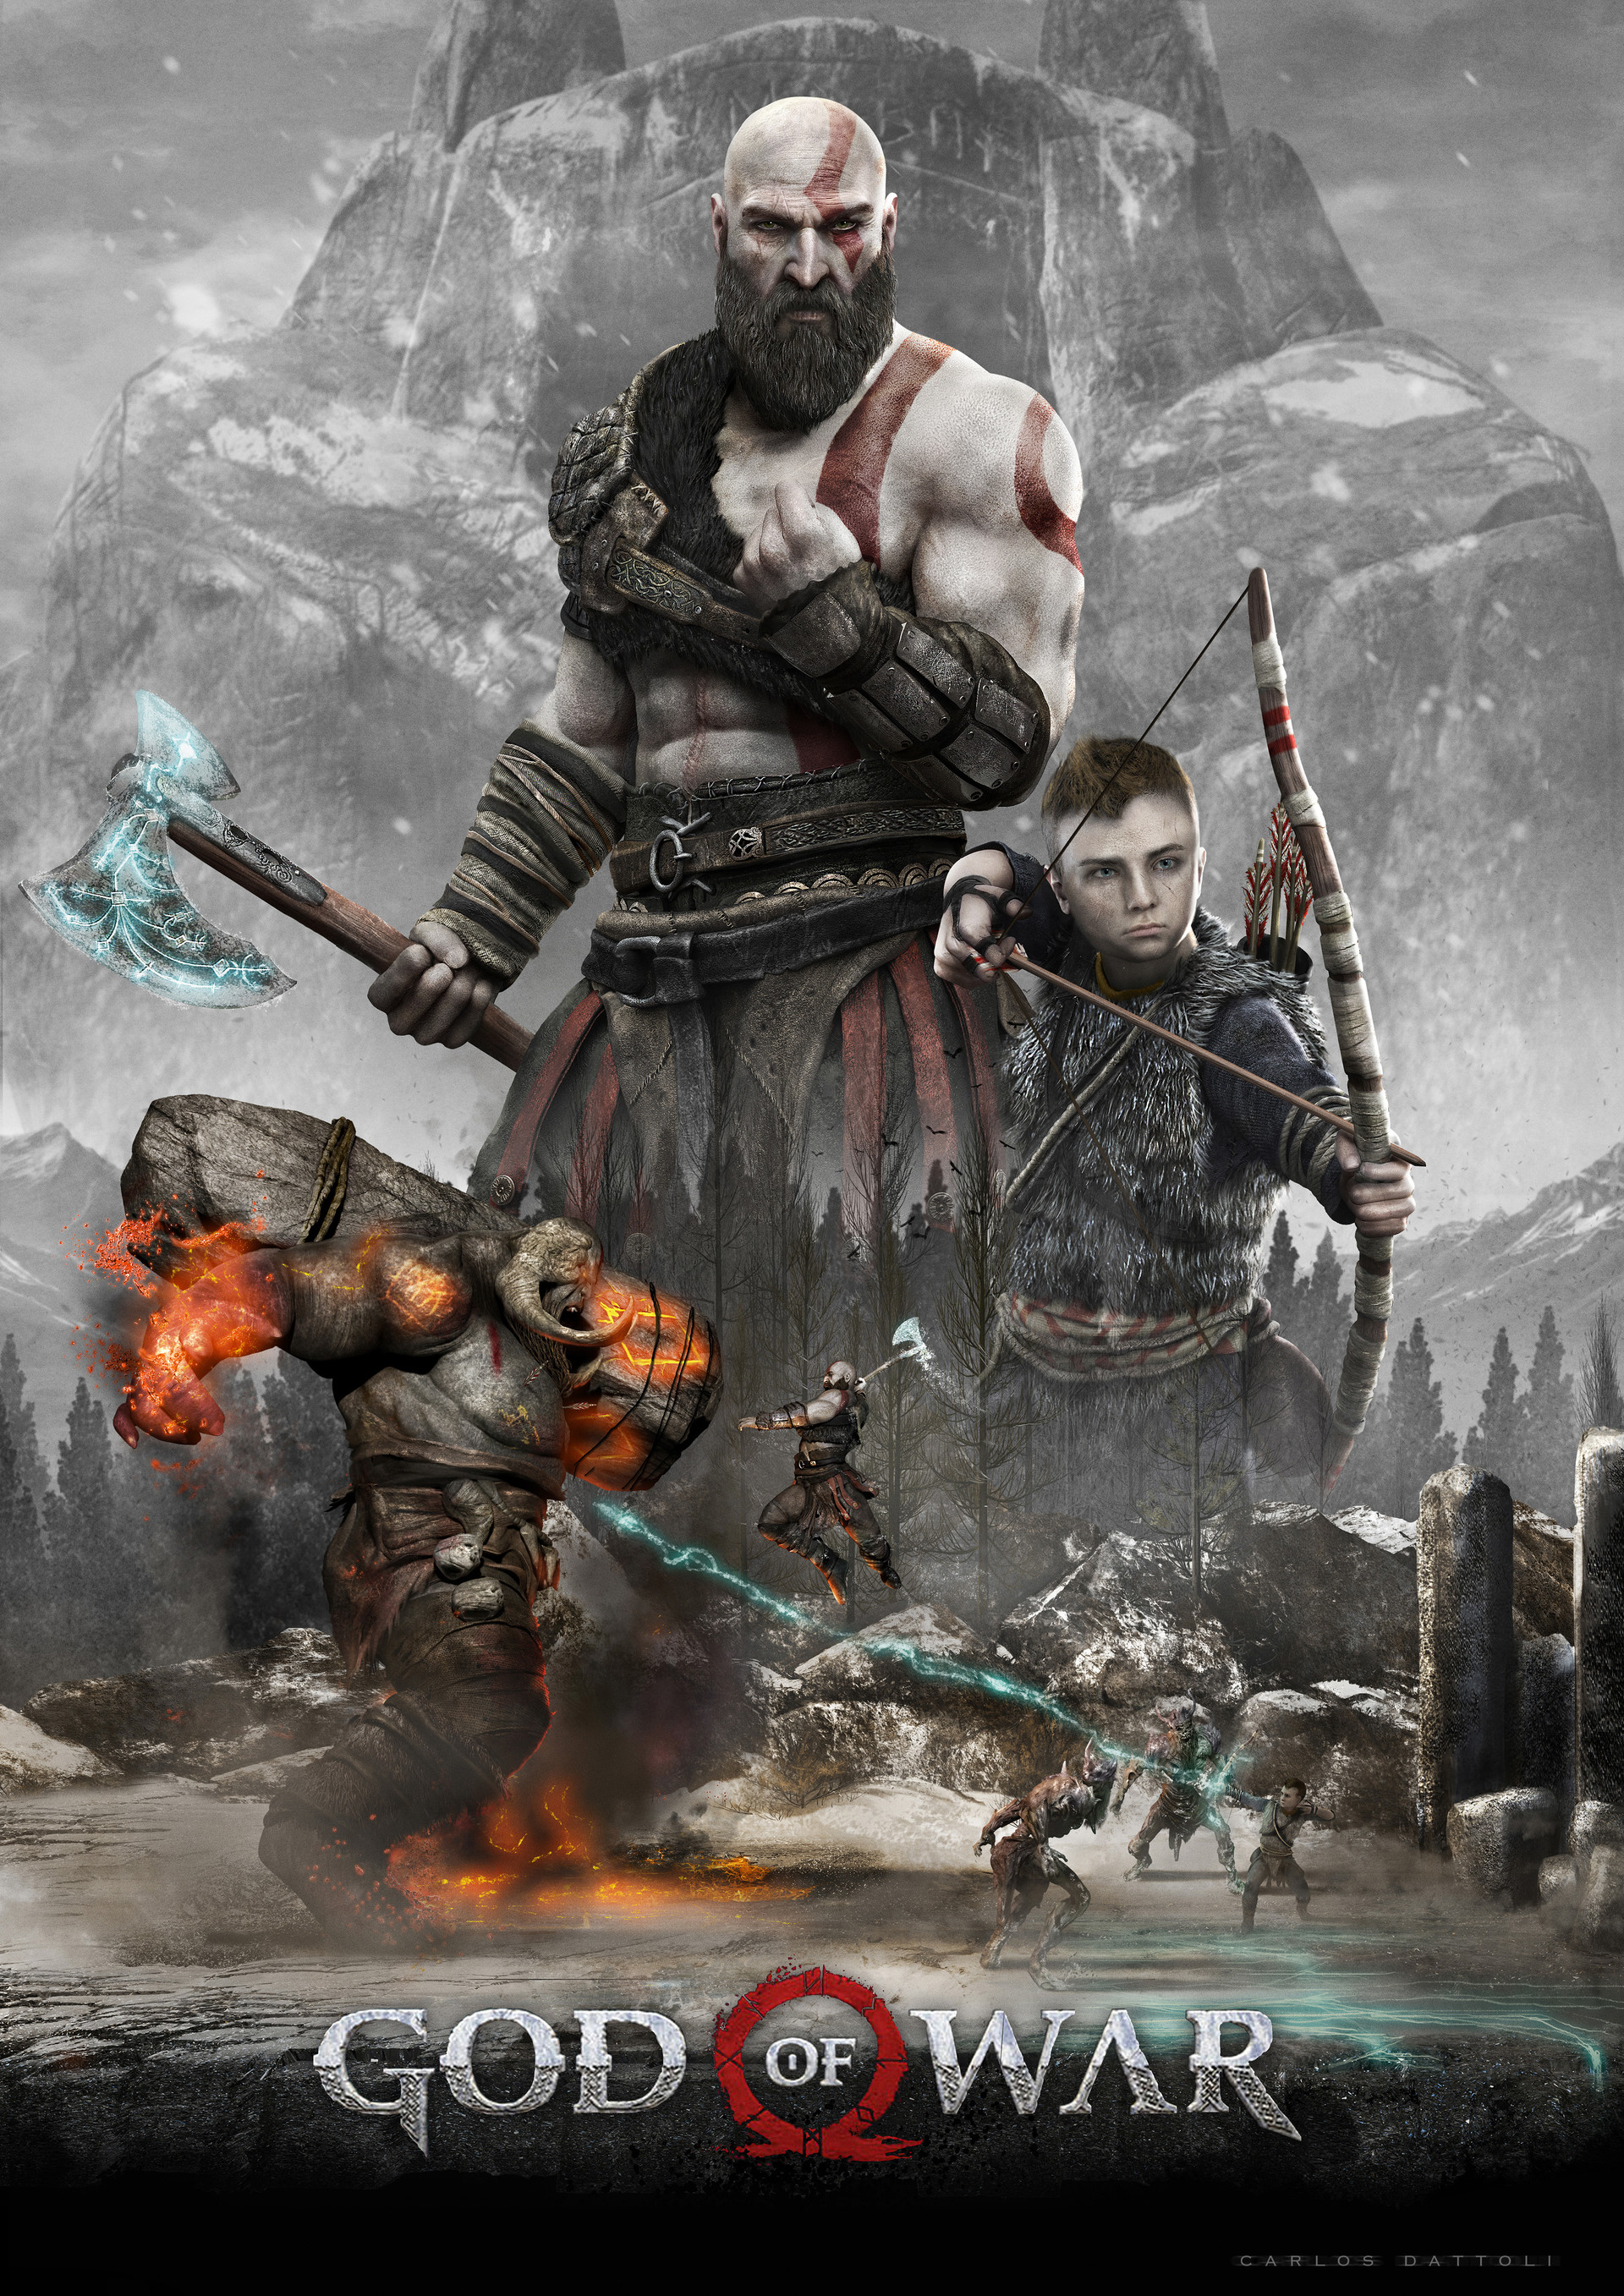 enchanted axe god of war 4 – wallpapers for tech